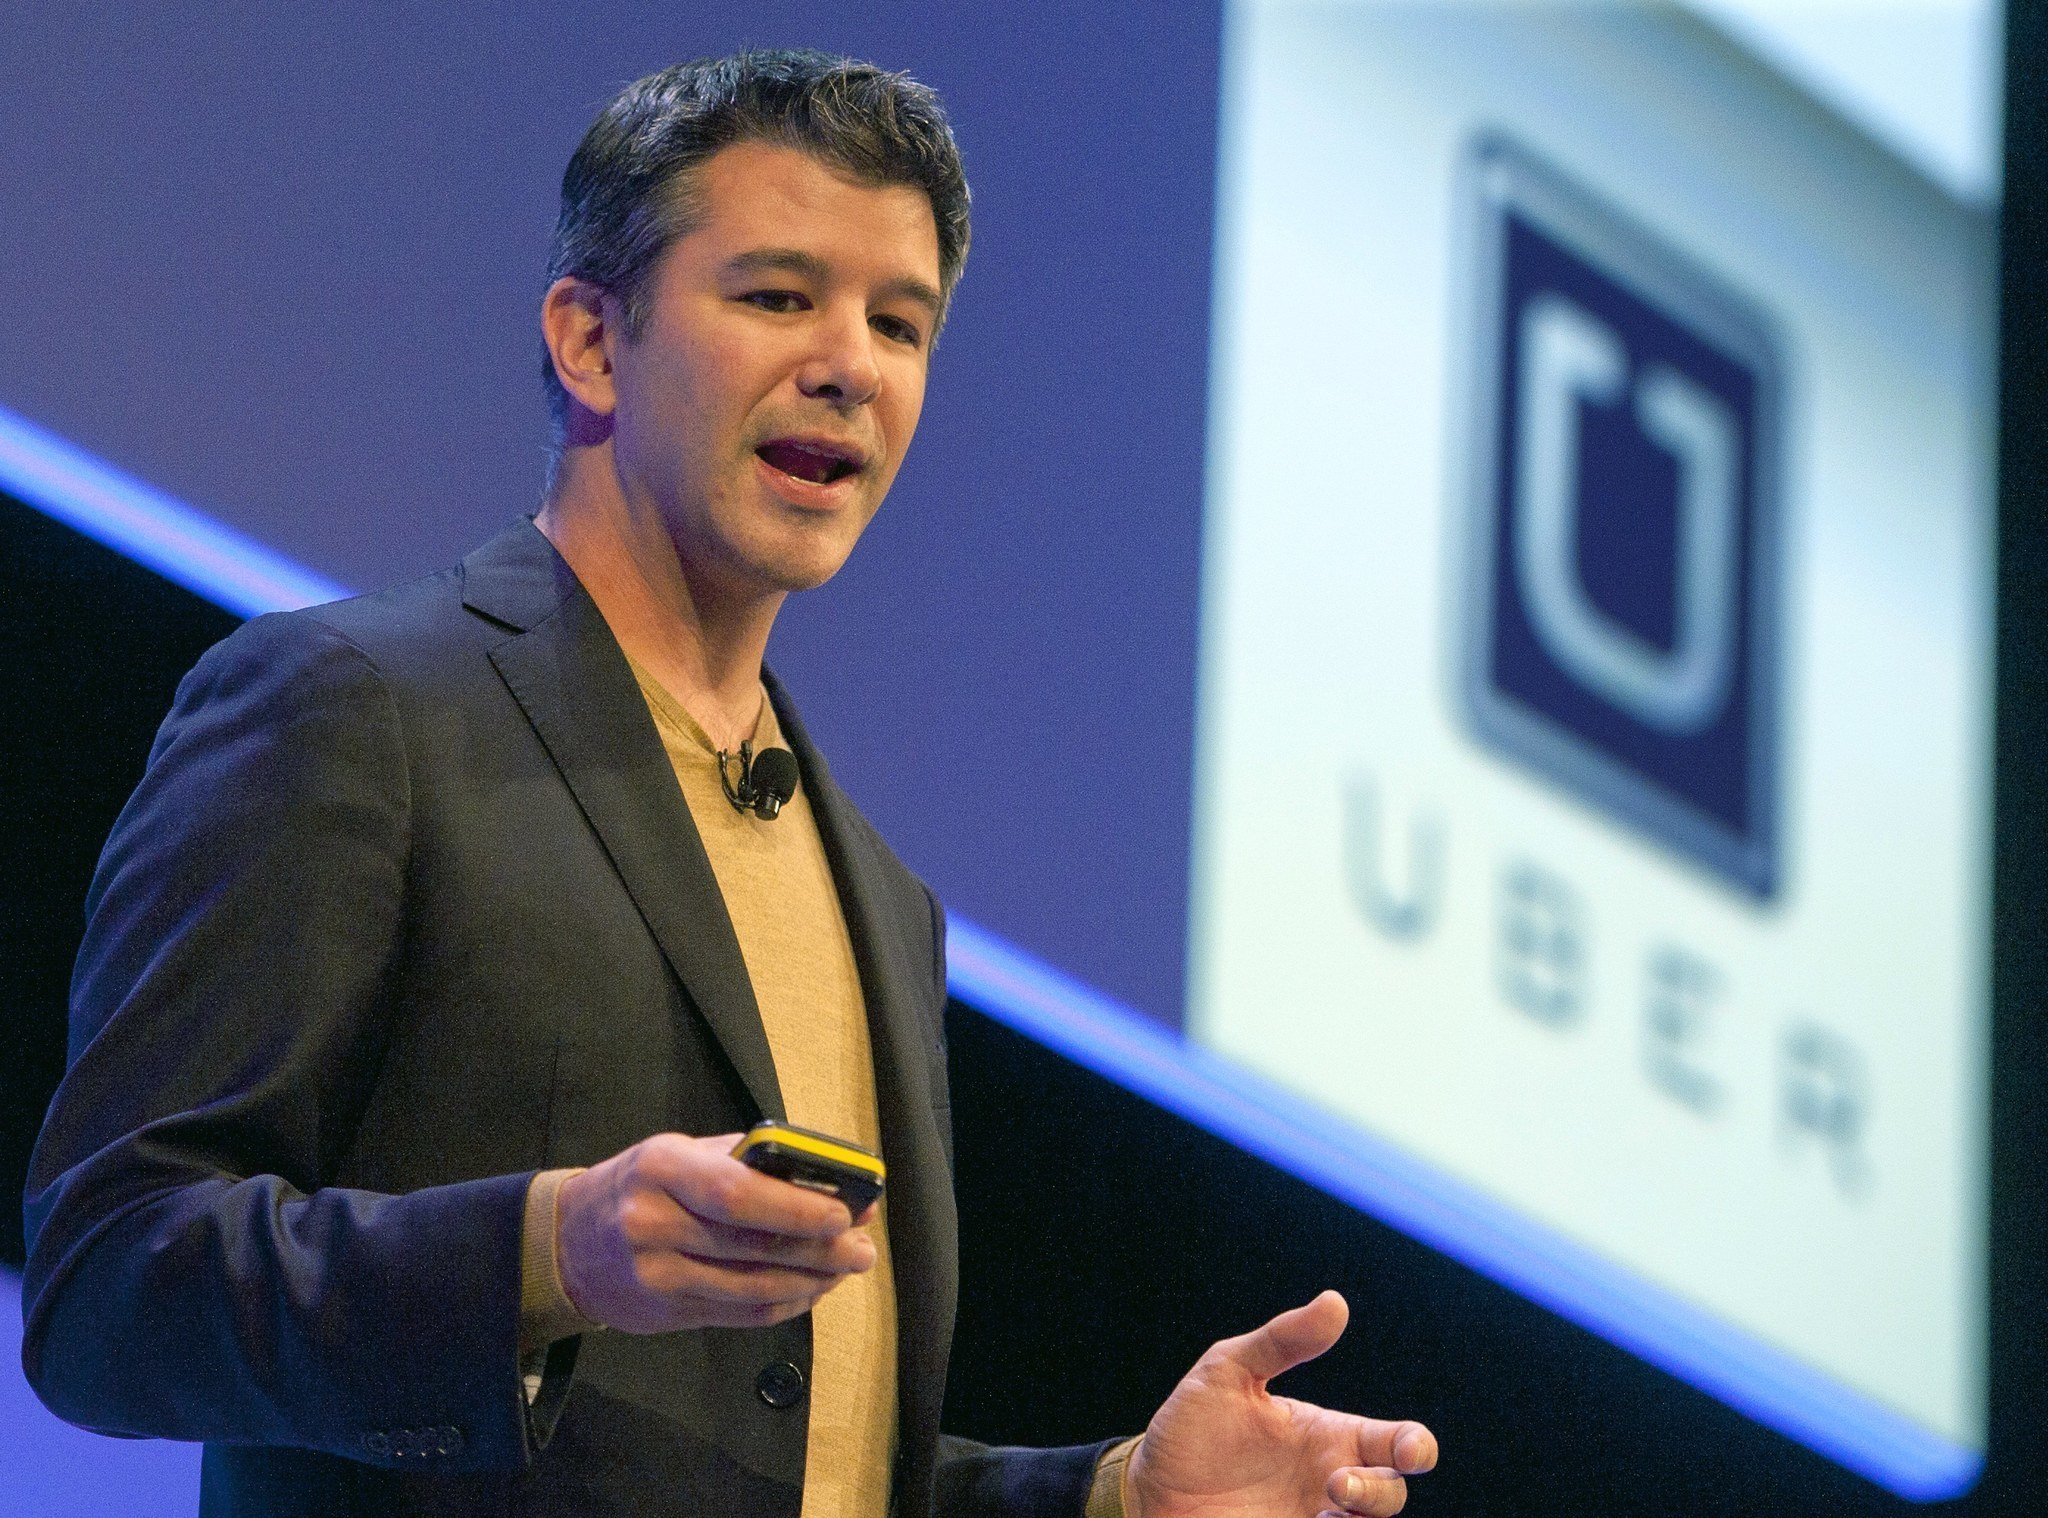 Uber employees petition for former CEO Travis Kalanick's return